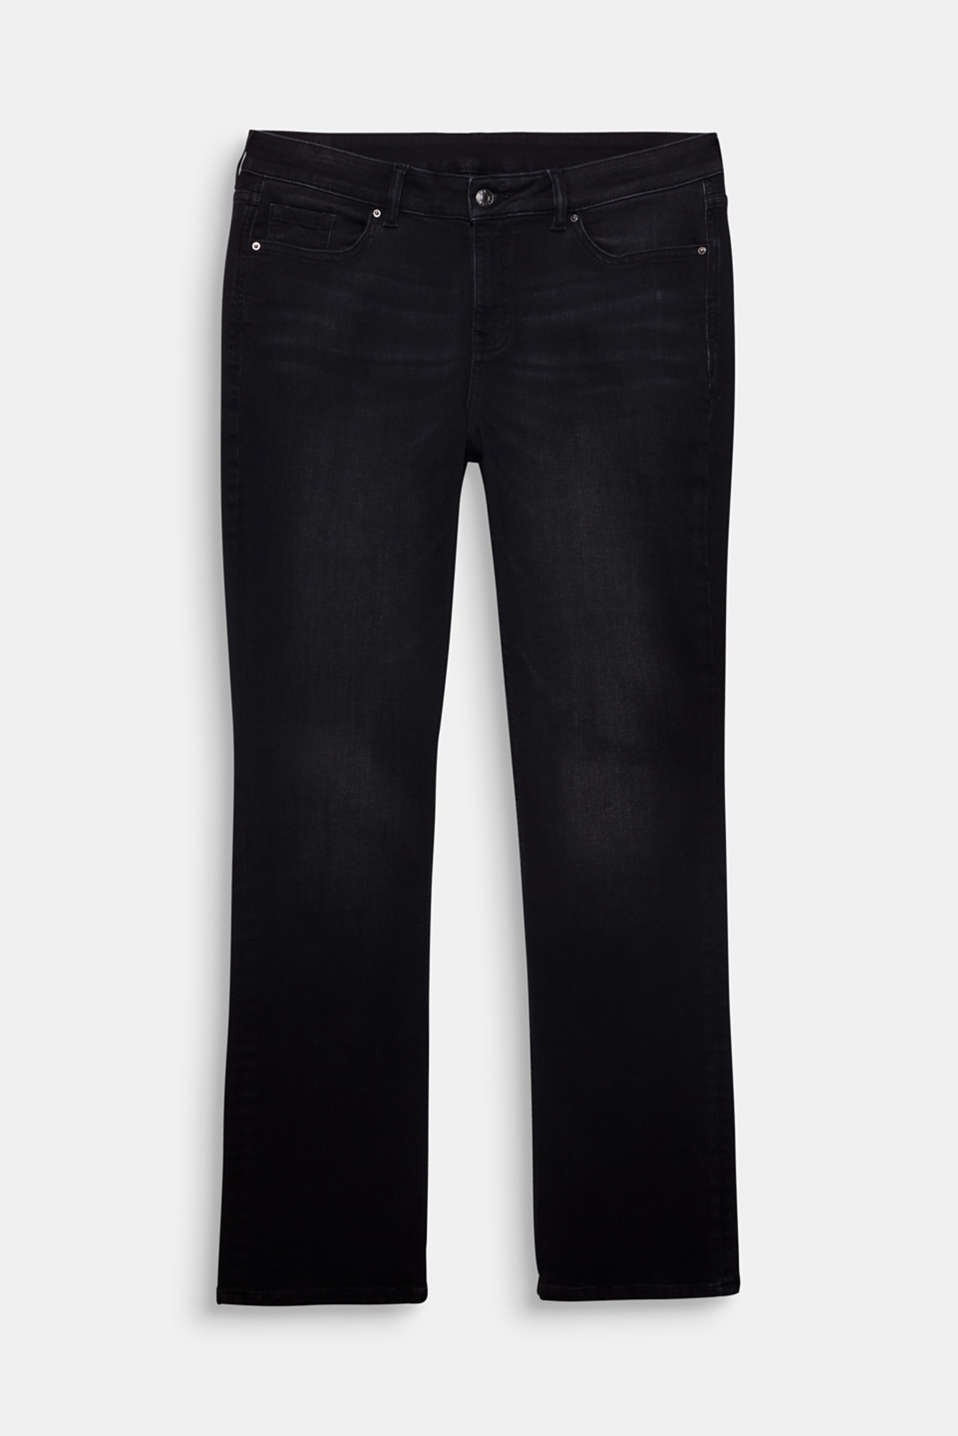 CURVY stretch jeans in a dark wash, BLACK DARK WASH, detail image number 6